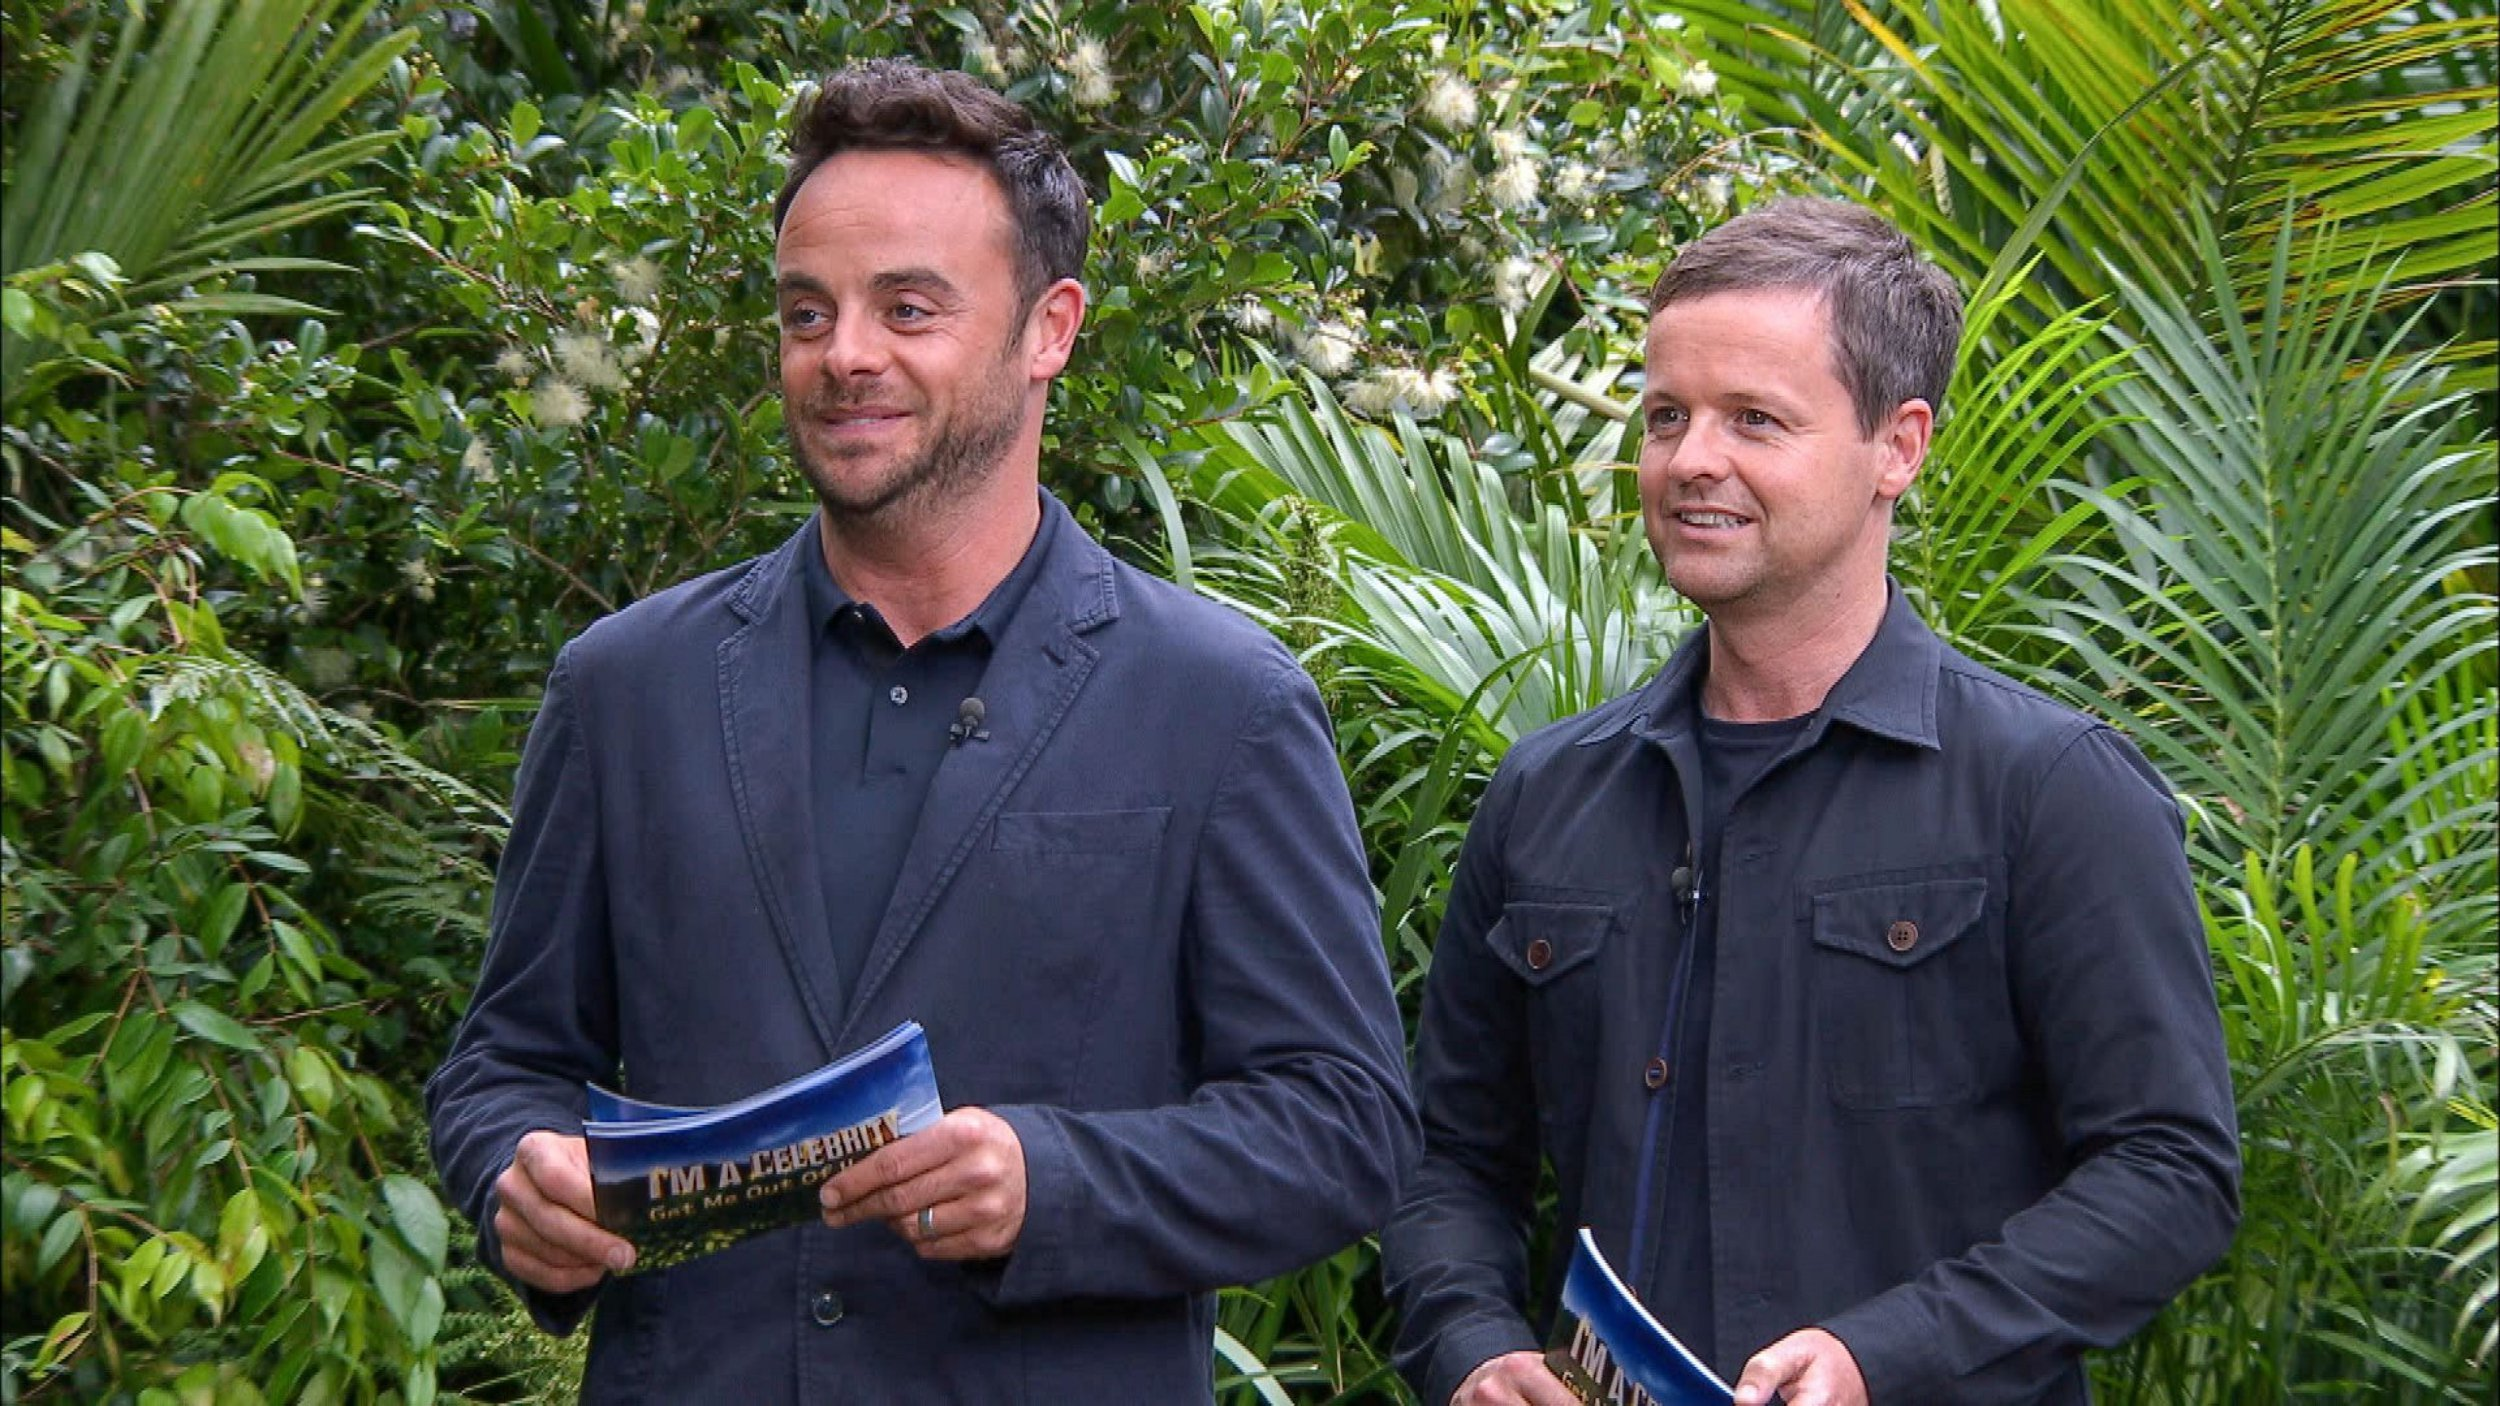 Ant McPartlin thanks fans for their support as he breaks silence after confirming he will miss I'm A Celeb